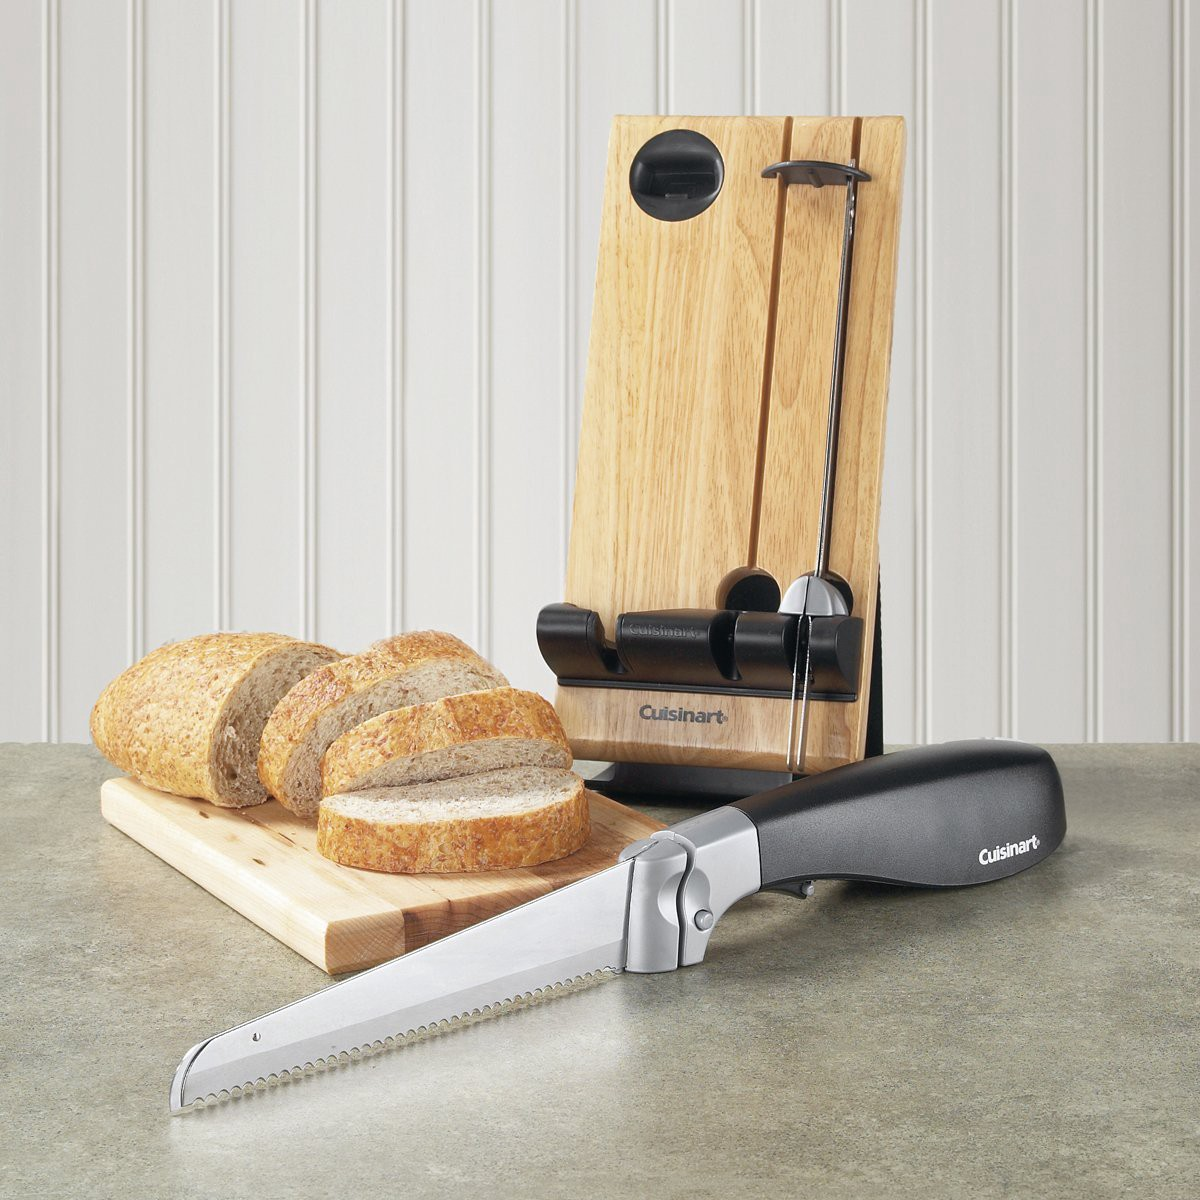 Tech Devices Electric Carving Knife